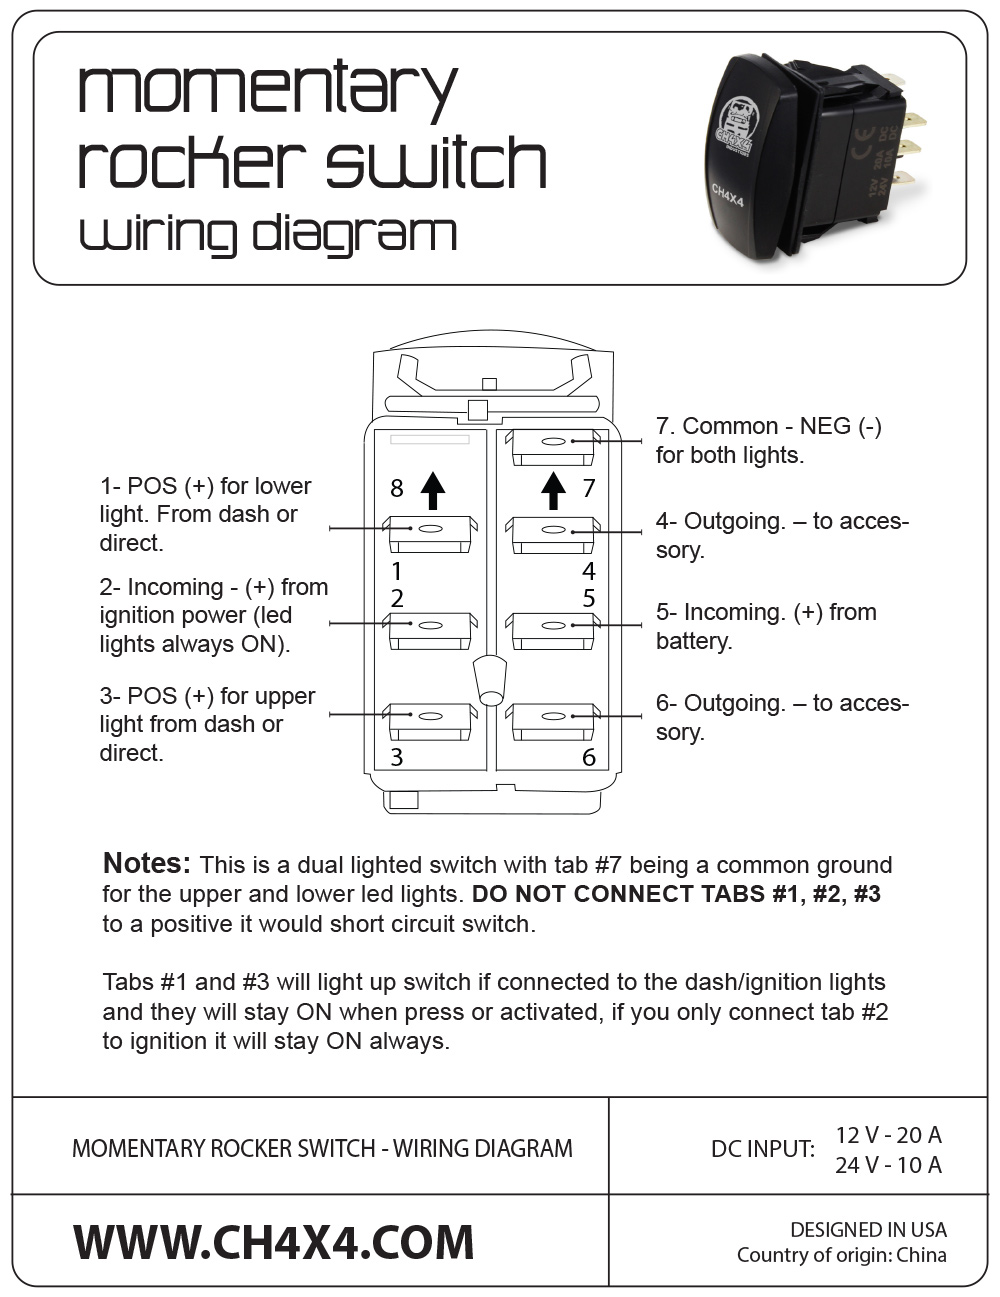 Winch Rocker Switch Wiring Diagram - 2004 Acura Tsx Fuse Box Diagram | Bege Wiring  Diagram | Winch Rocker Switch Wiring Diagram |  | Bege Wiring Diagram